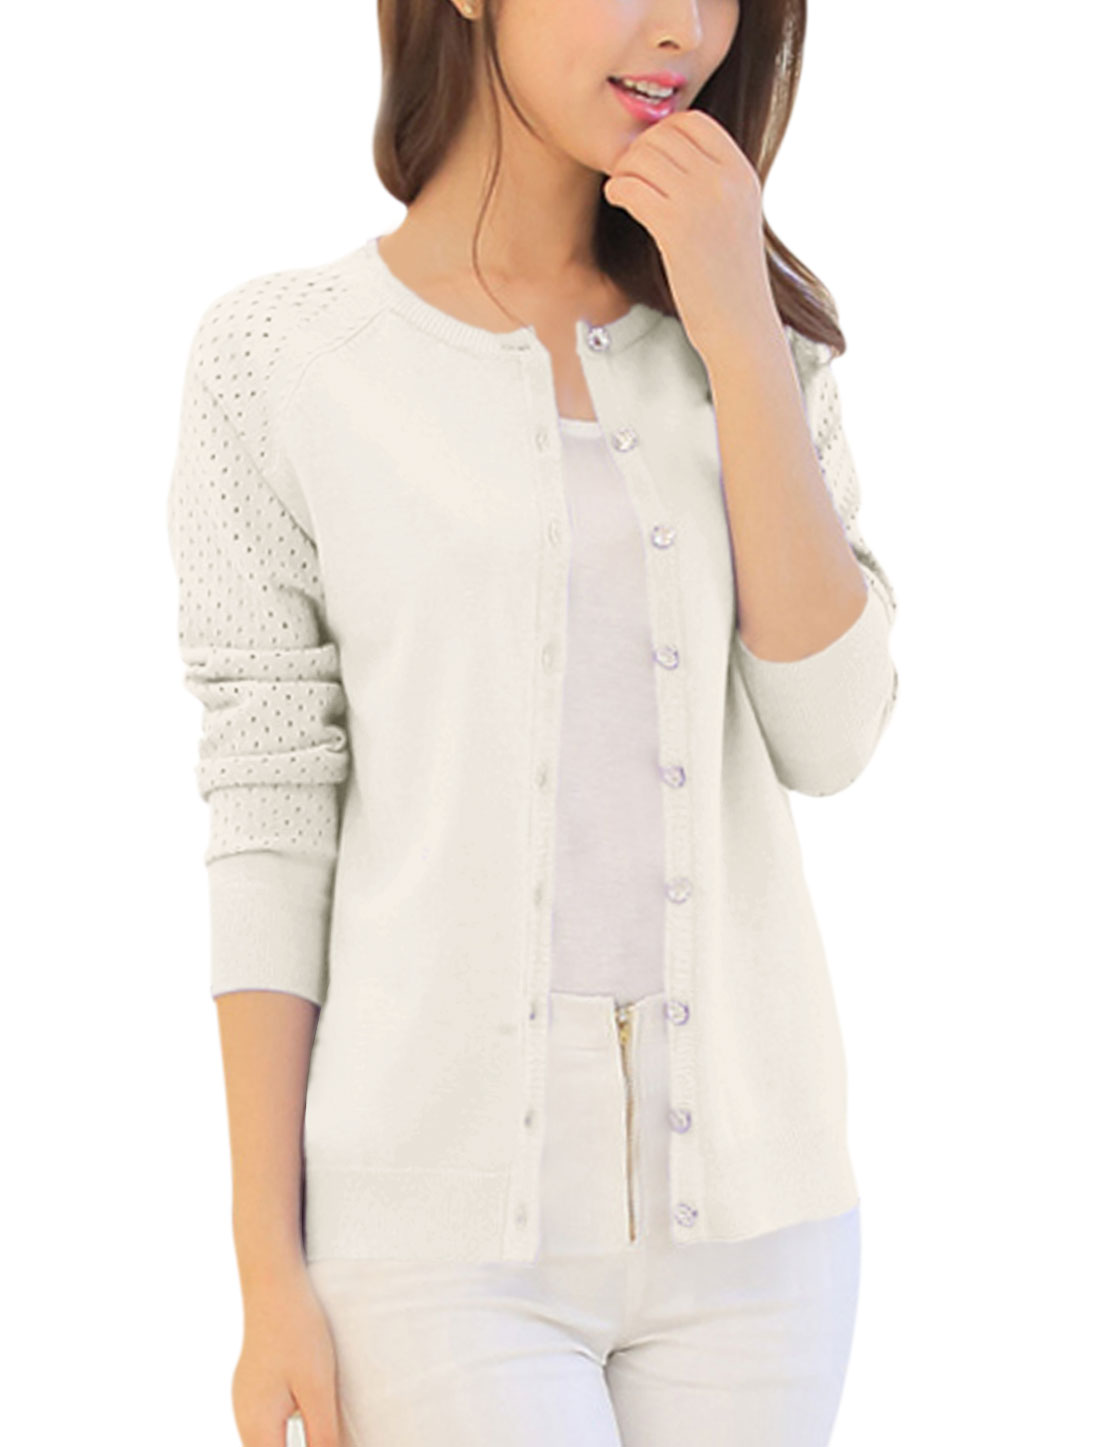 Lady Long Raglan Sleeve Button Up Hollow Out Design Knit Cardigan Beige XS